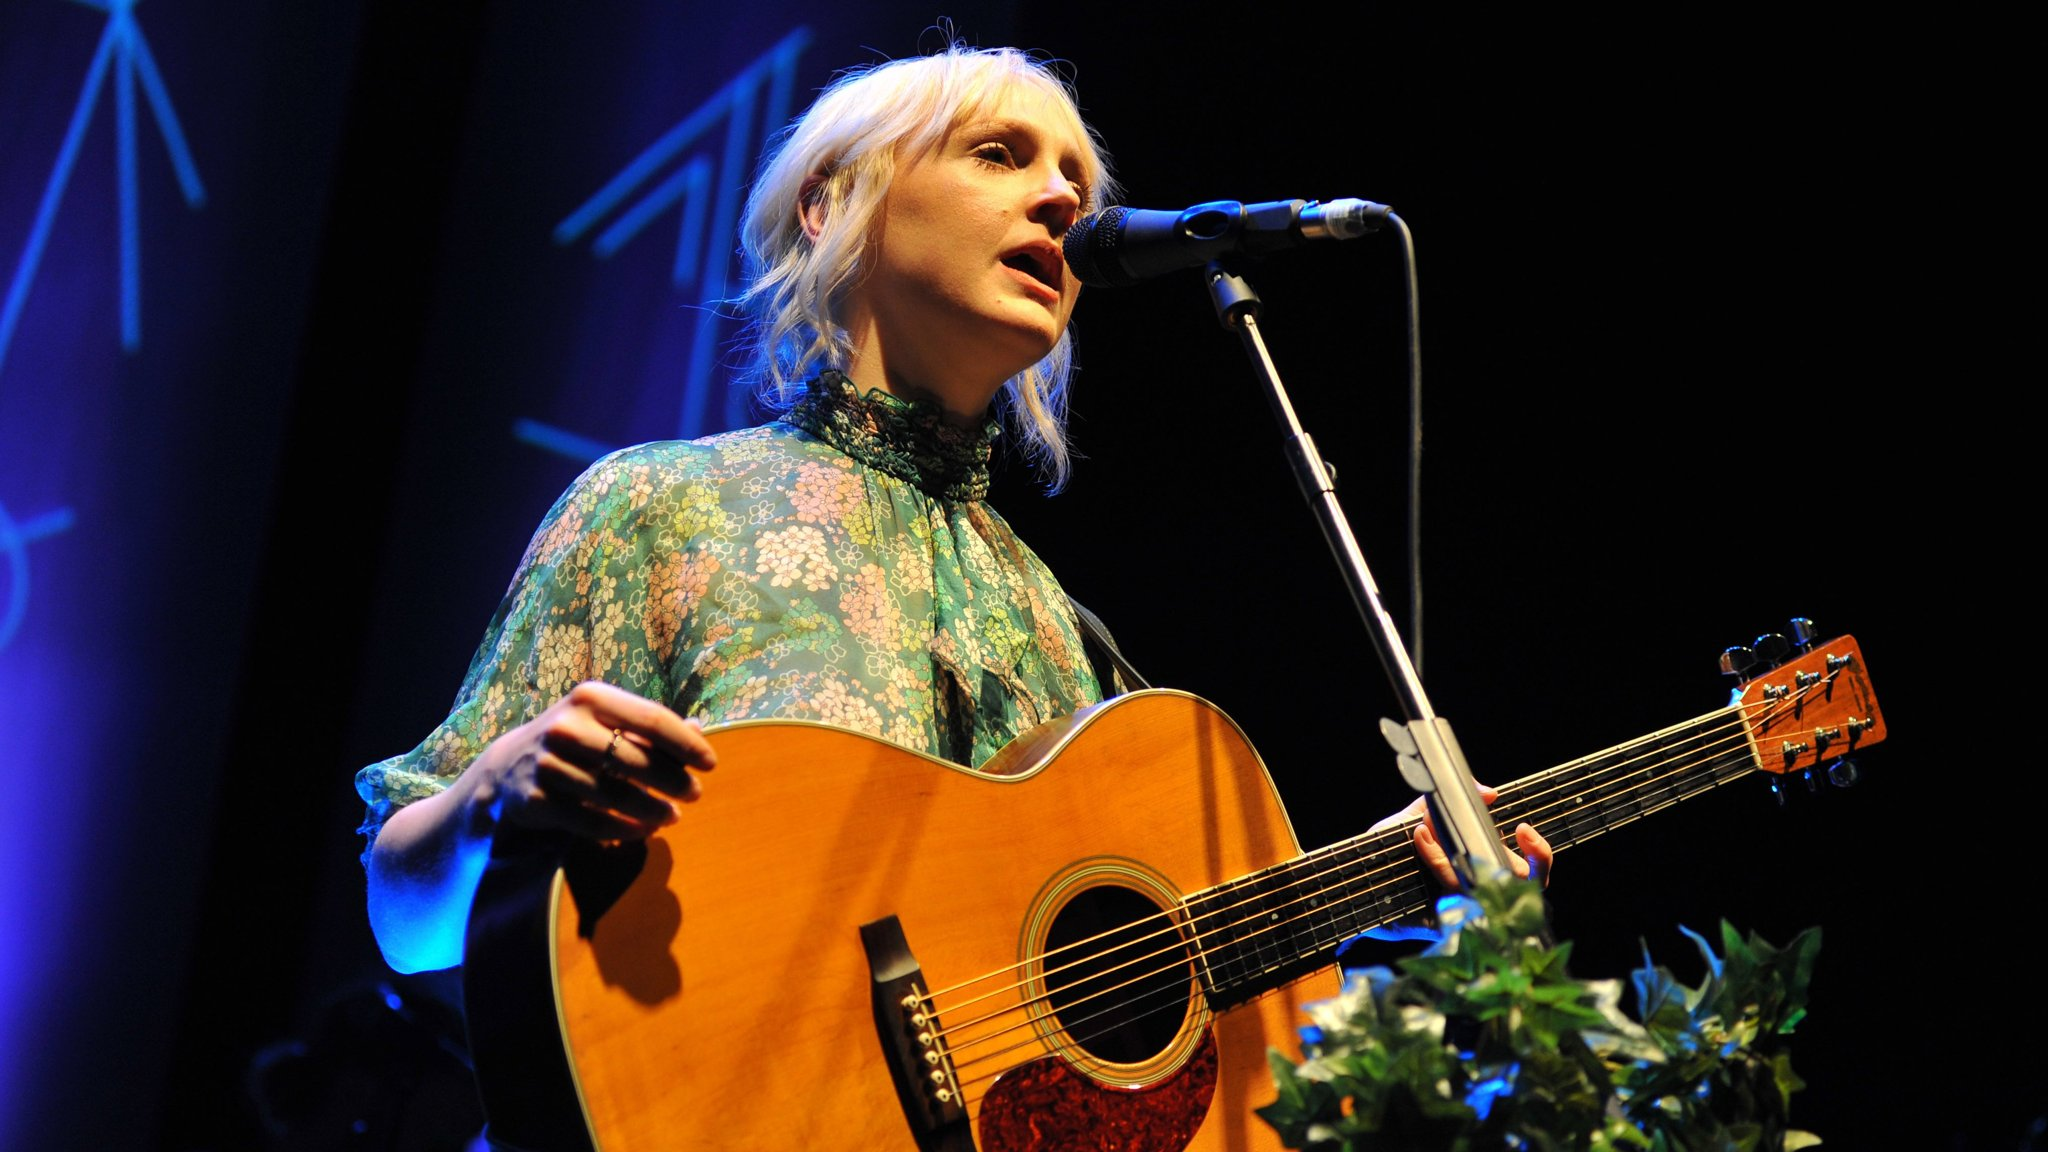 The Mesmerising Voice Of Laura Marling At The Roundhouse